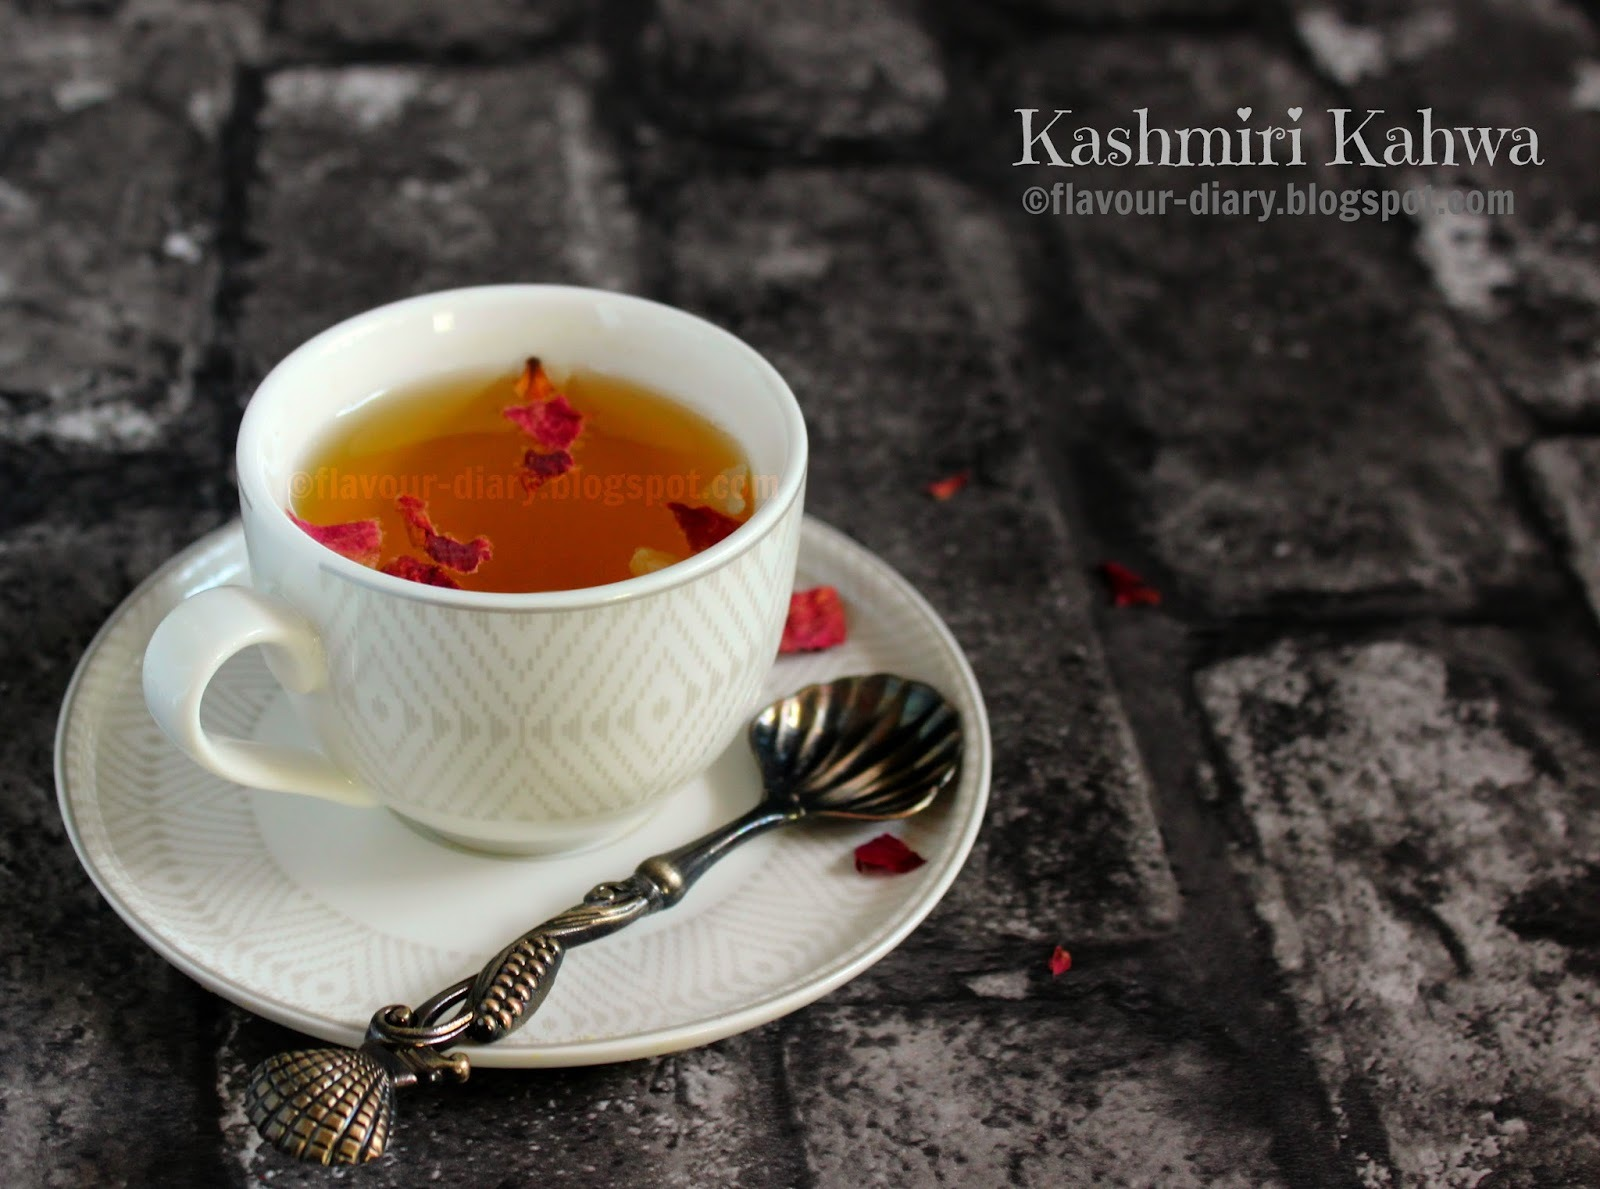 Kashmiri Kong Kahwa Tea Recipe| Kashmiri Cuisine | Weight loss Recipe | Indian Beverage | Flavour Diary